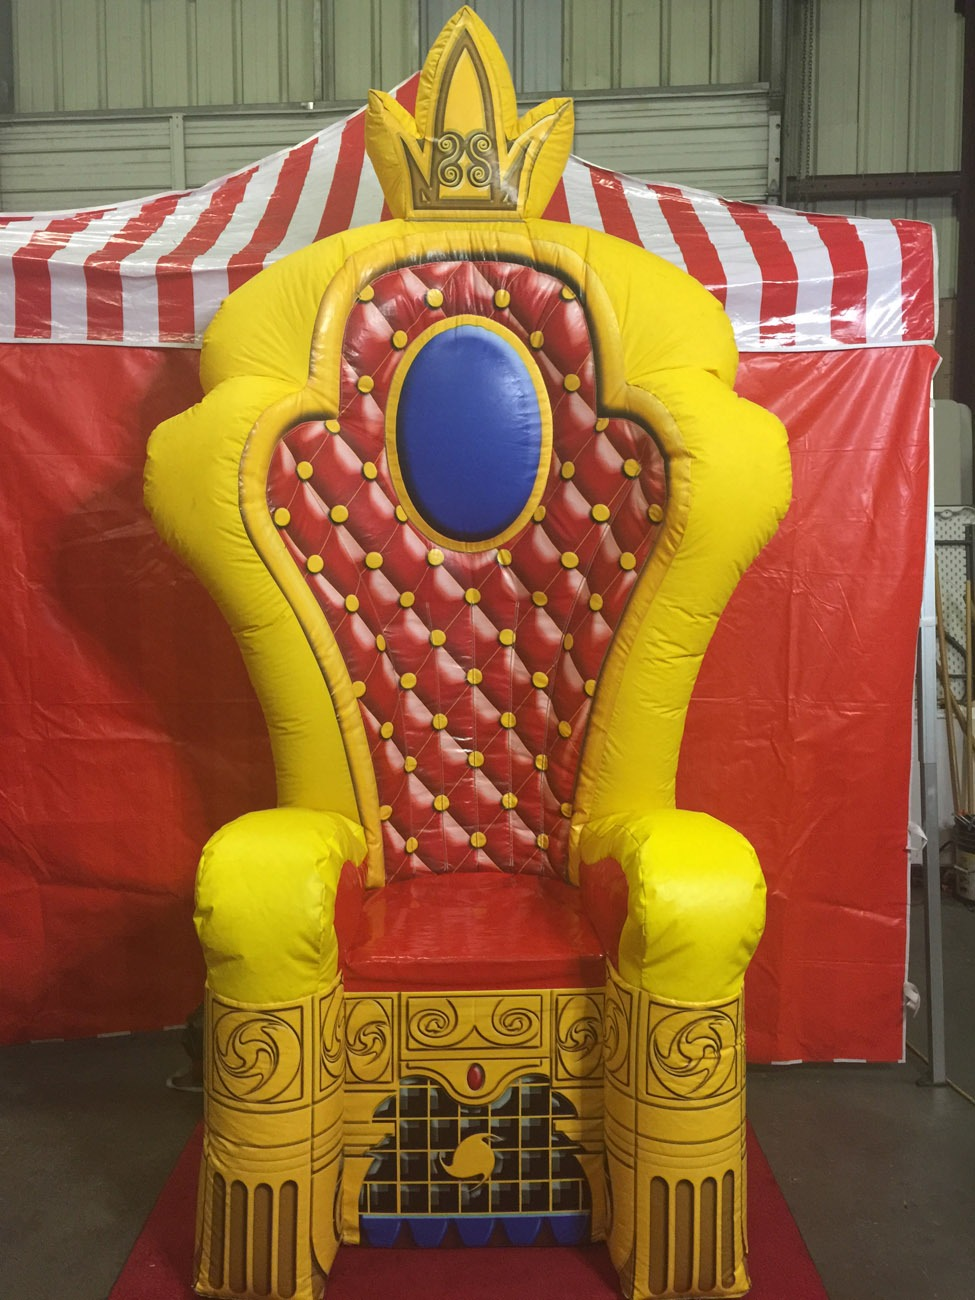 Inflatable Throne Kings Chair  Lets Party